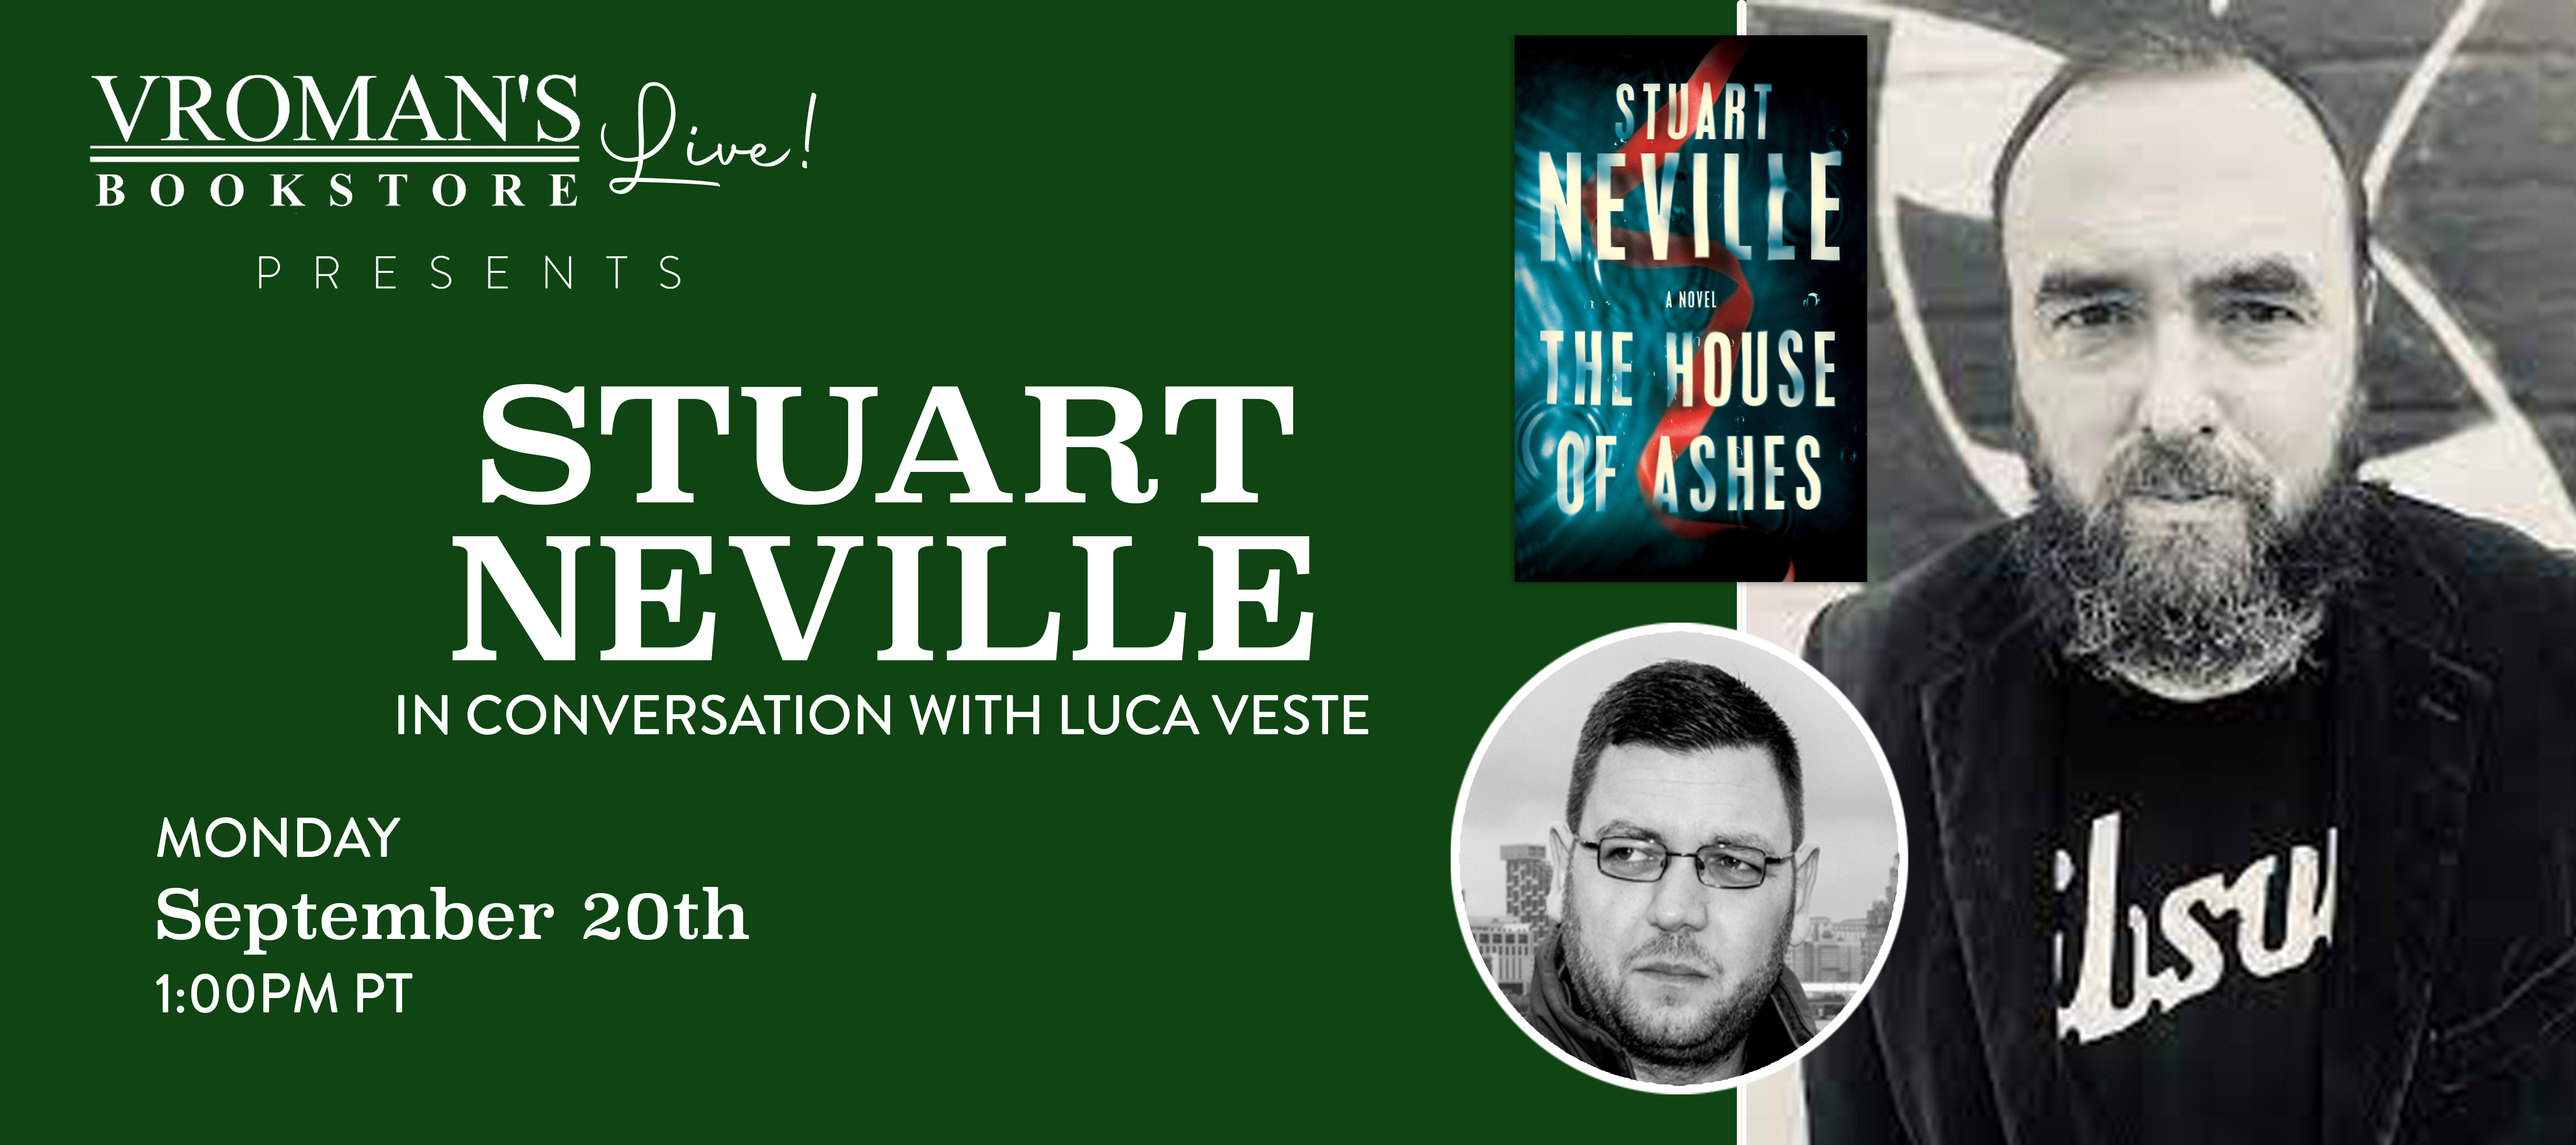 Image of green banner with details for Stuart Neville, in conversation with Luca Veste, discusses The House of Ashes o Monday September 20th at 1pm